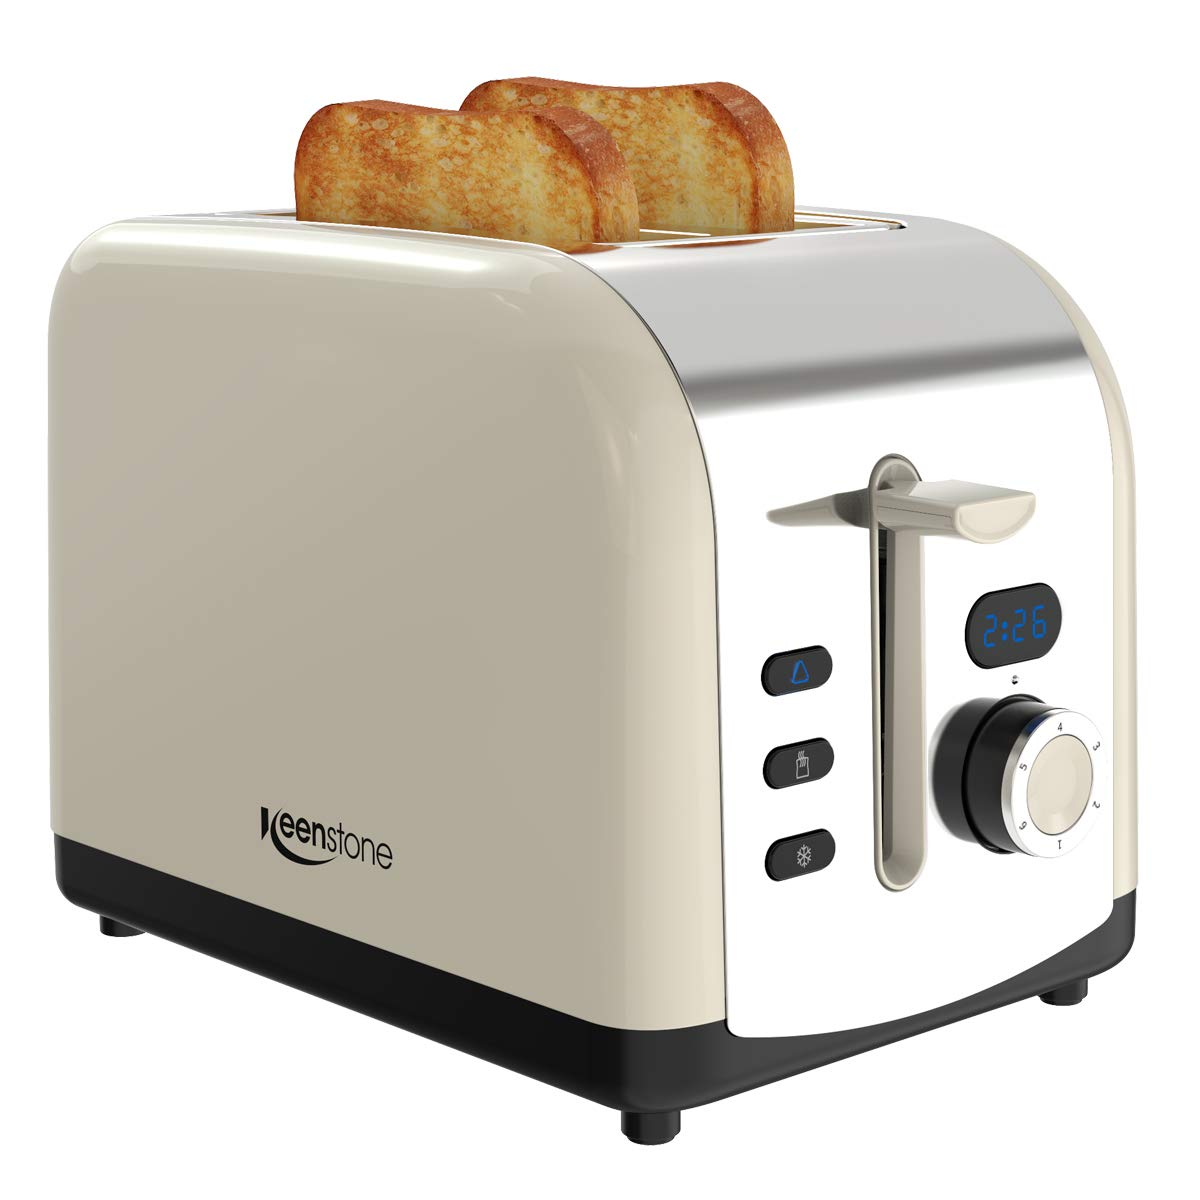 Wonderful Retro LED Timer Display Stainless Steel Toasters